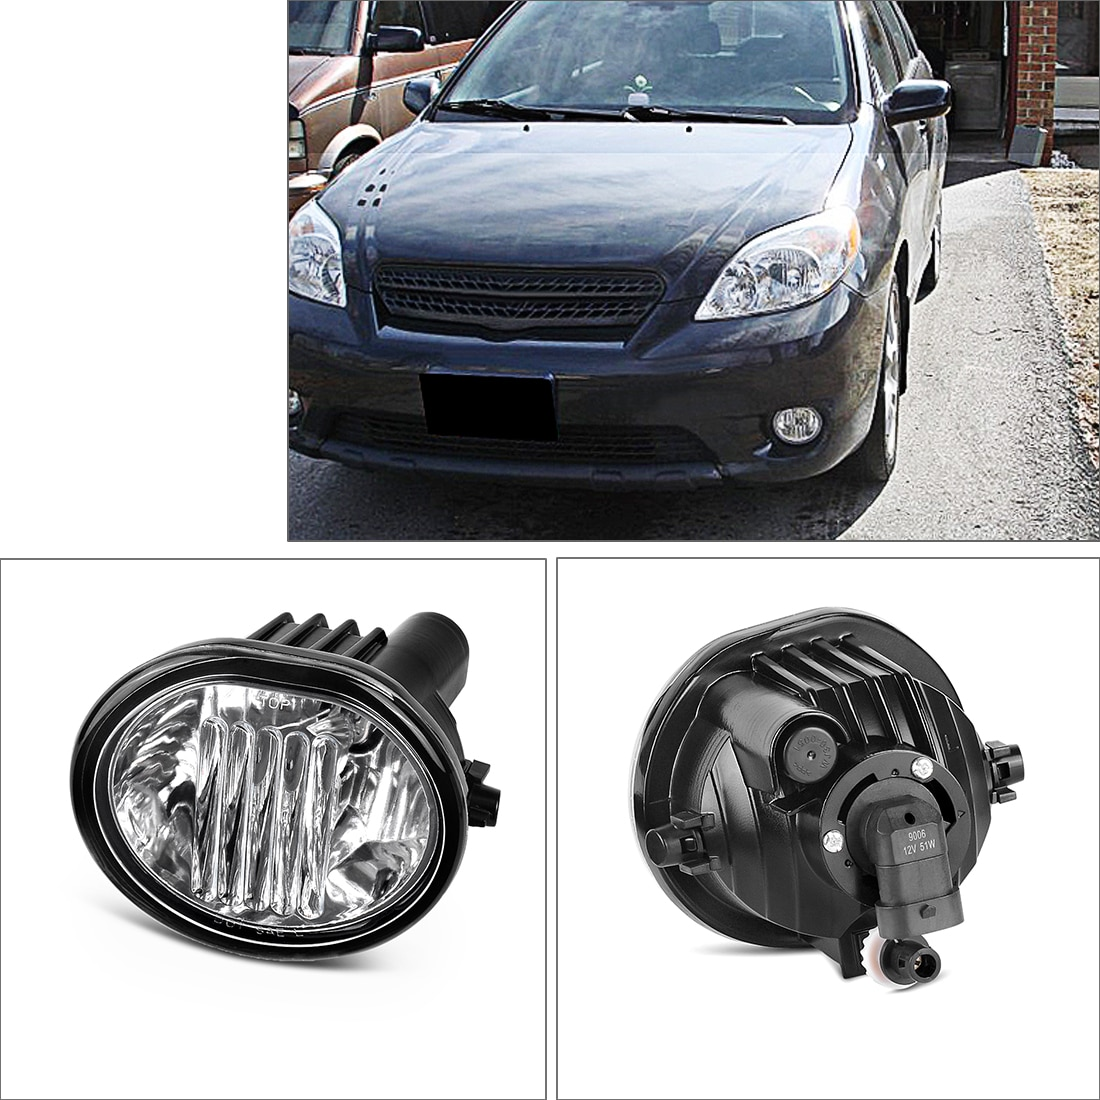 Fog Lights 9006 12V 51W Halogen Lamp for 03-08 Toyota Matrix/ 03-08 Pontiac  Vibe / 04-10 Scion TC One Pair of Right and Left Clear Glass Lens Fog Lamps  - Walmart.com - Walmart.com | 2007 Toyota Scion Tc Fog Lights Wiring |  | Walmart